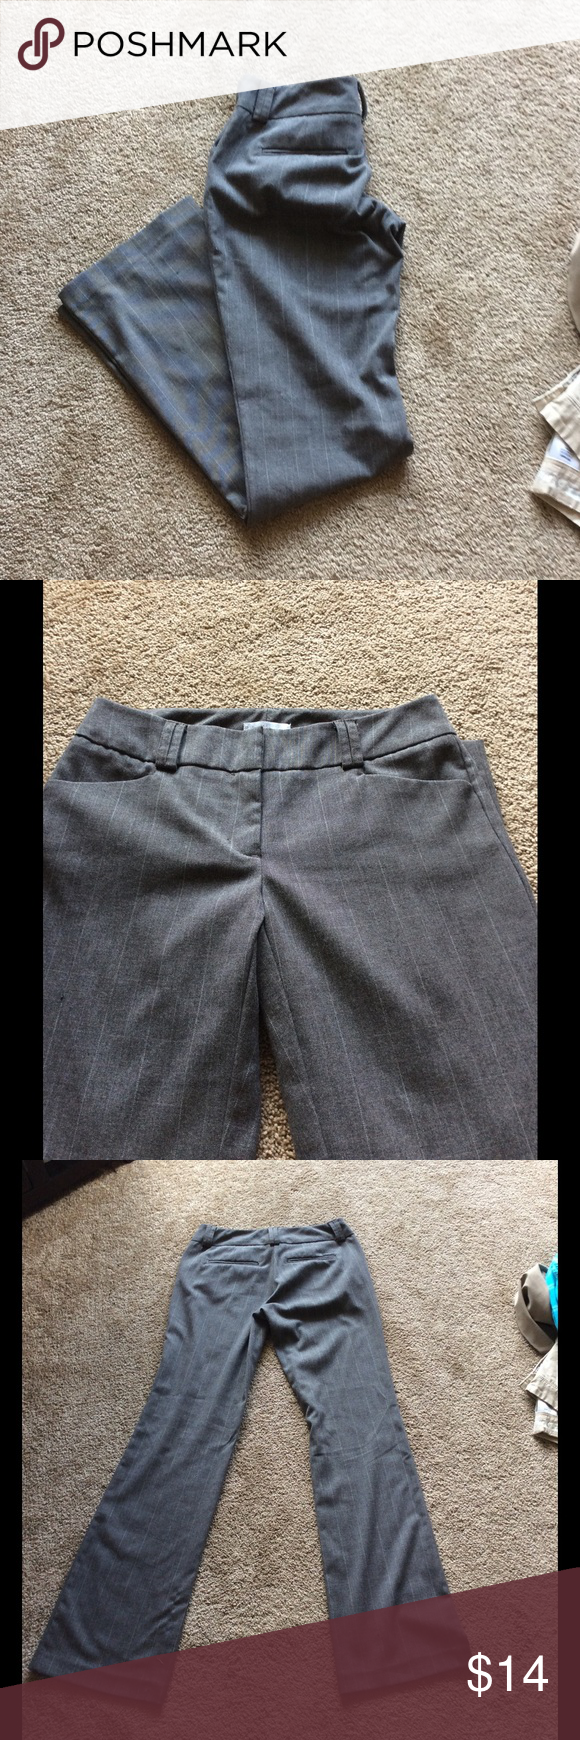 Gray pants Loved these pants. They just don't fit me anymore. Neutral color went with almost every shirt in my closet. Perfect for work in office, teacher, etc. New York and Company, size 0 average, stretch. Clip closure instead of zipper and button. Small snag shown in last picture is located on the back of the pant leg at the bottom. New York & Company Pants